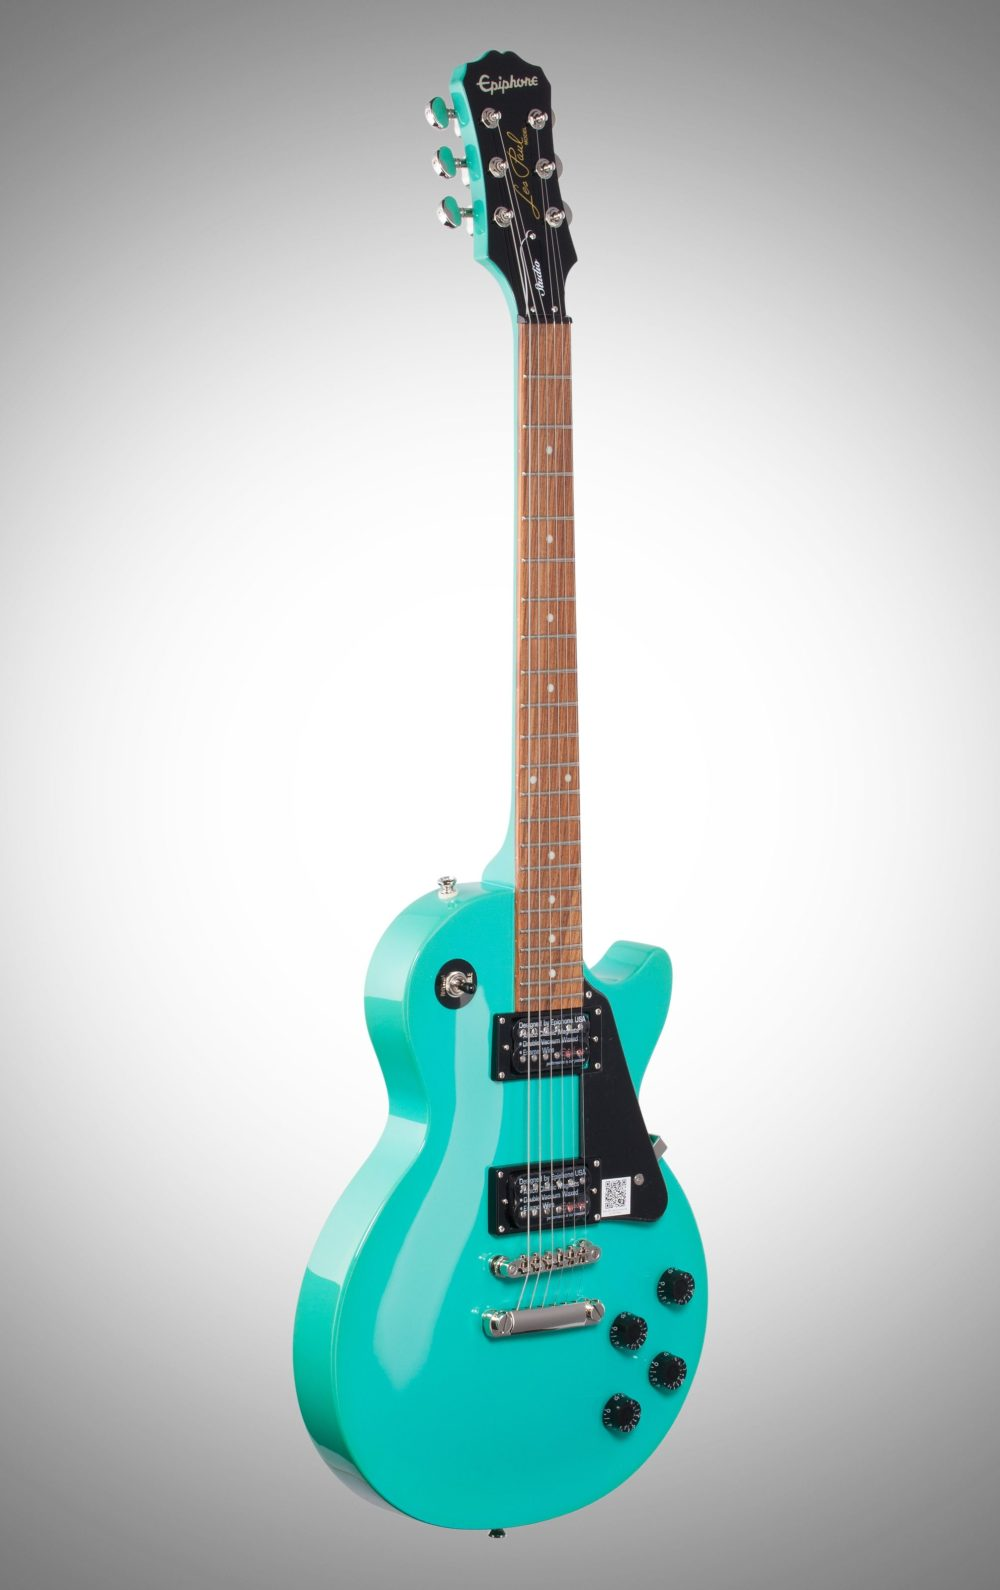 medium resolution of  epiphone les paul studio electric guitar turquoise body left front